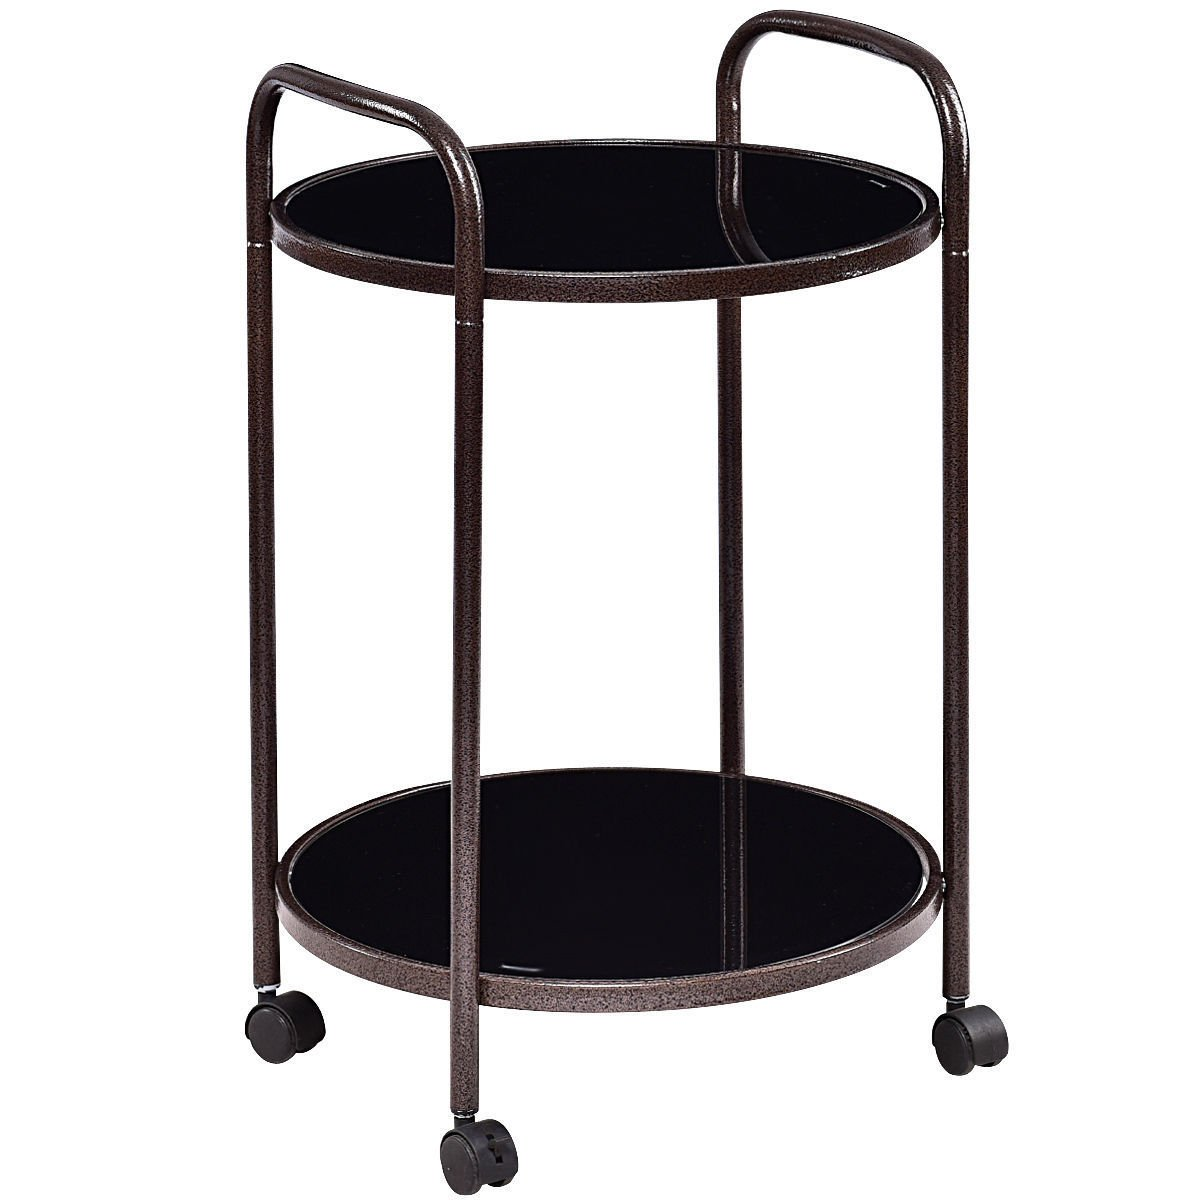 Moon_Daughter Spherical Portable Round Rolling Kitchen Food Trolley Serving Cart Tray Bar Drink Table Compact Design